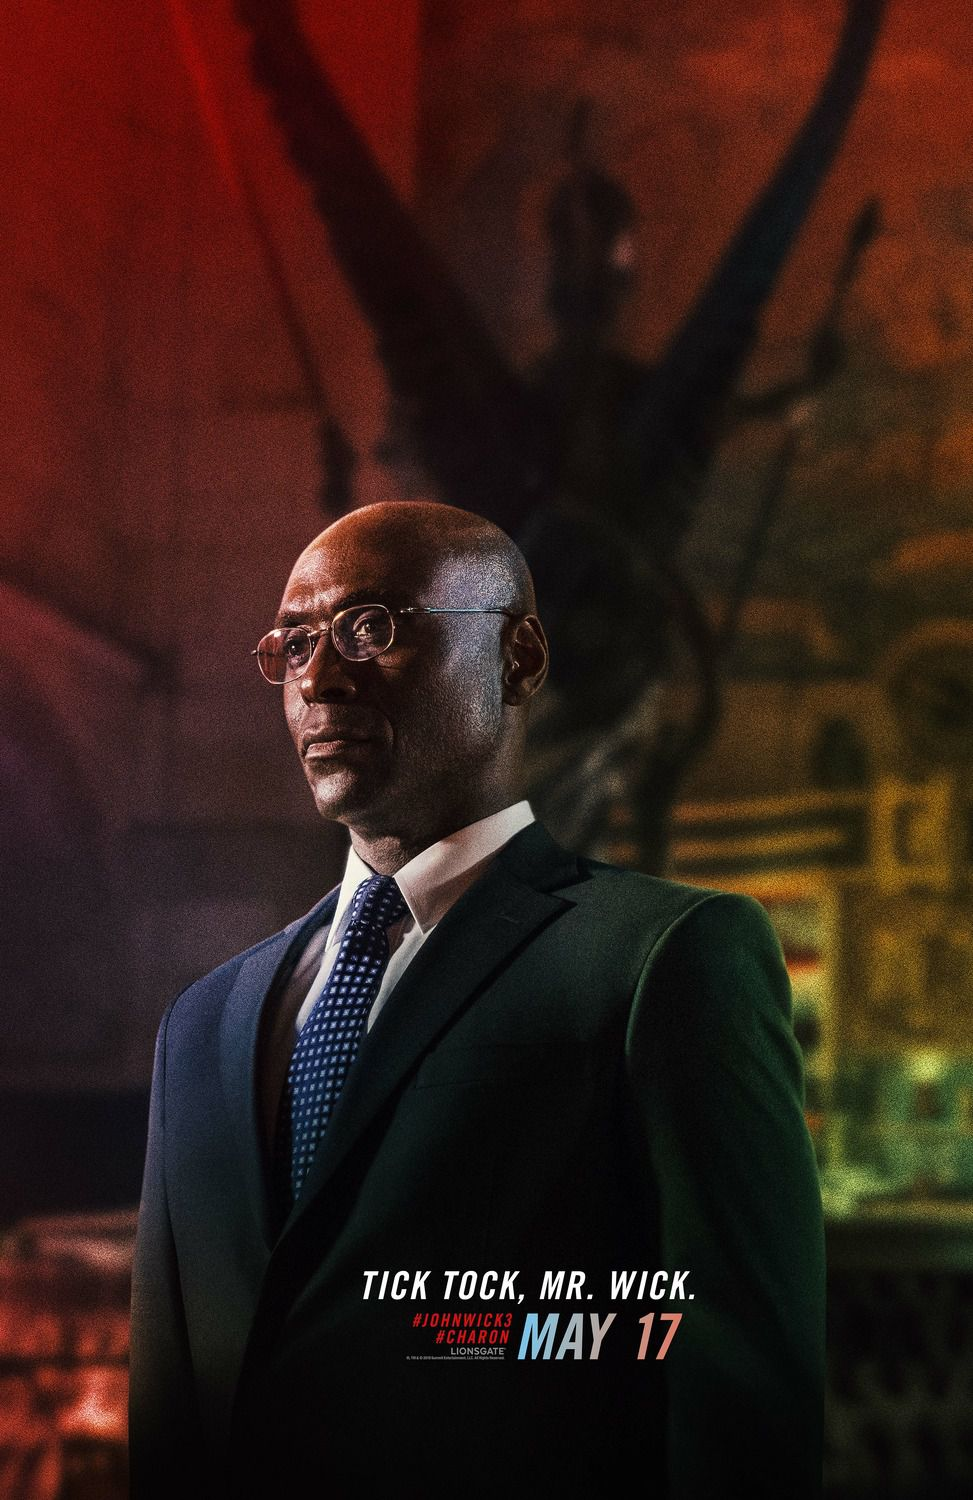 Lance Reddick as Charon